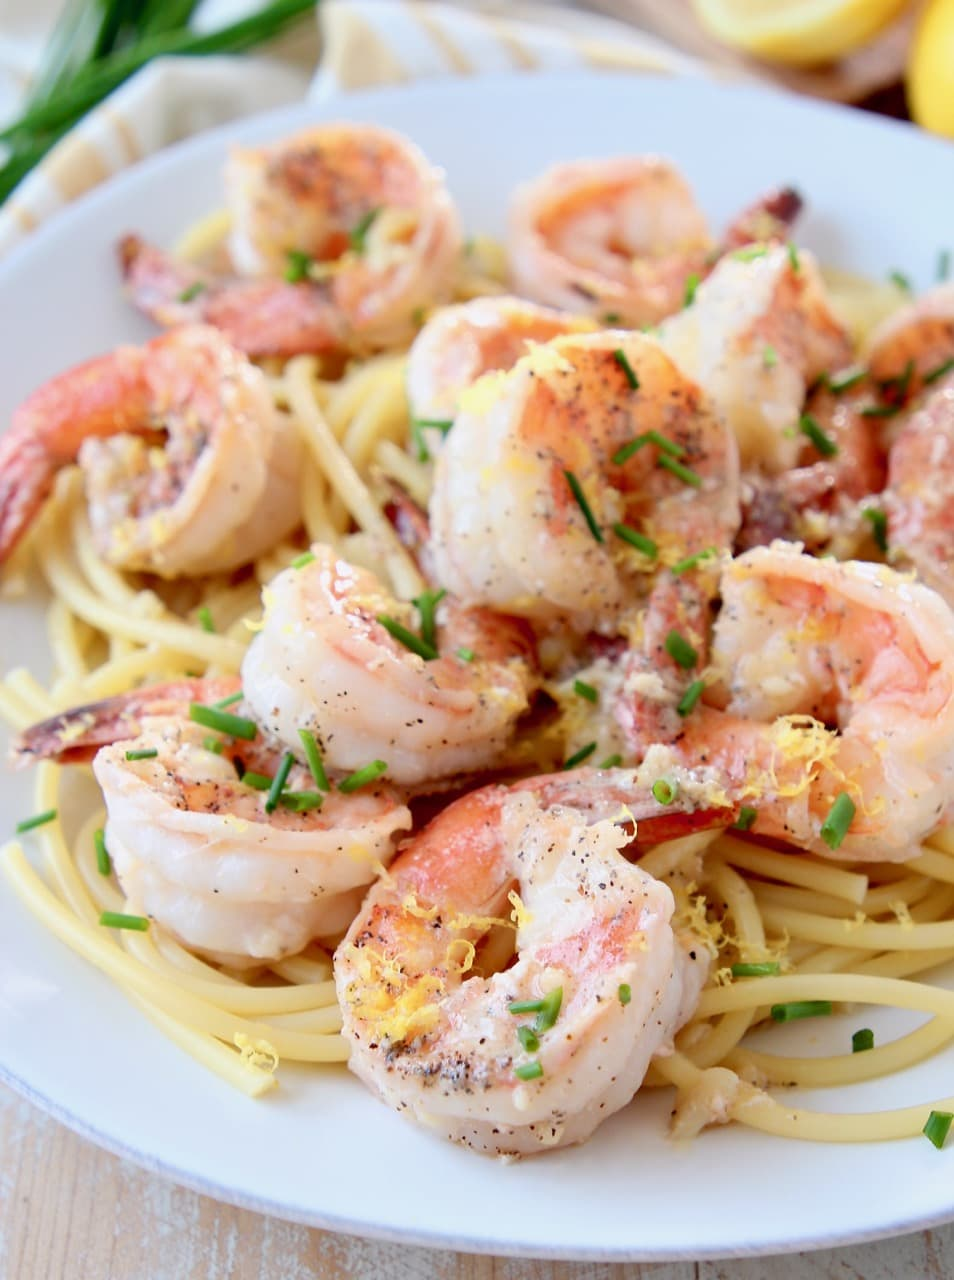 Shrimp over pasta, topped with chives and lemon zest on white plate